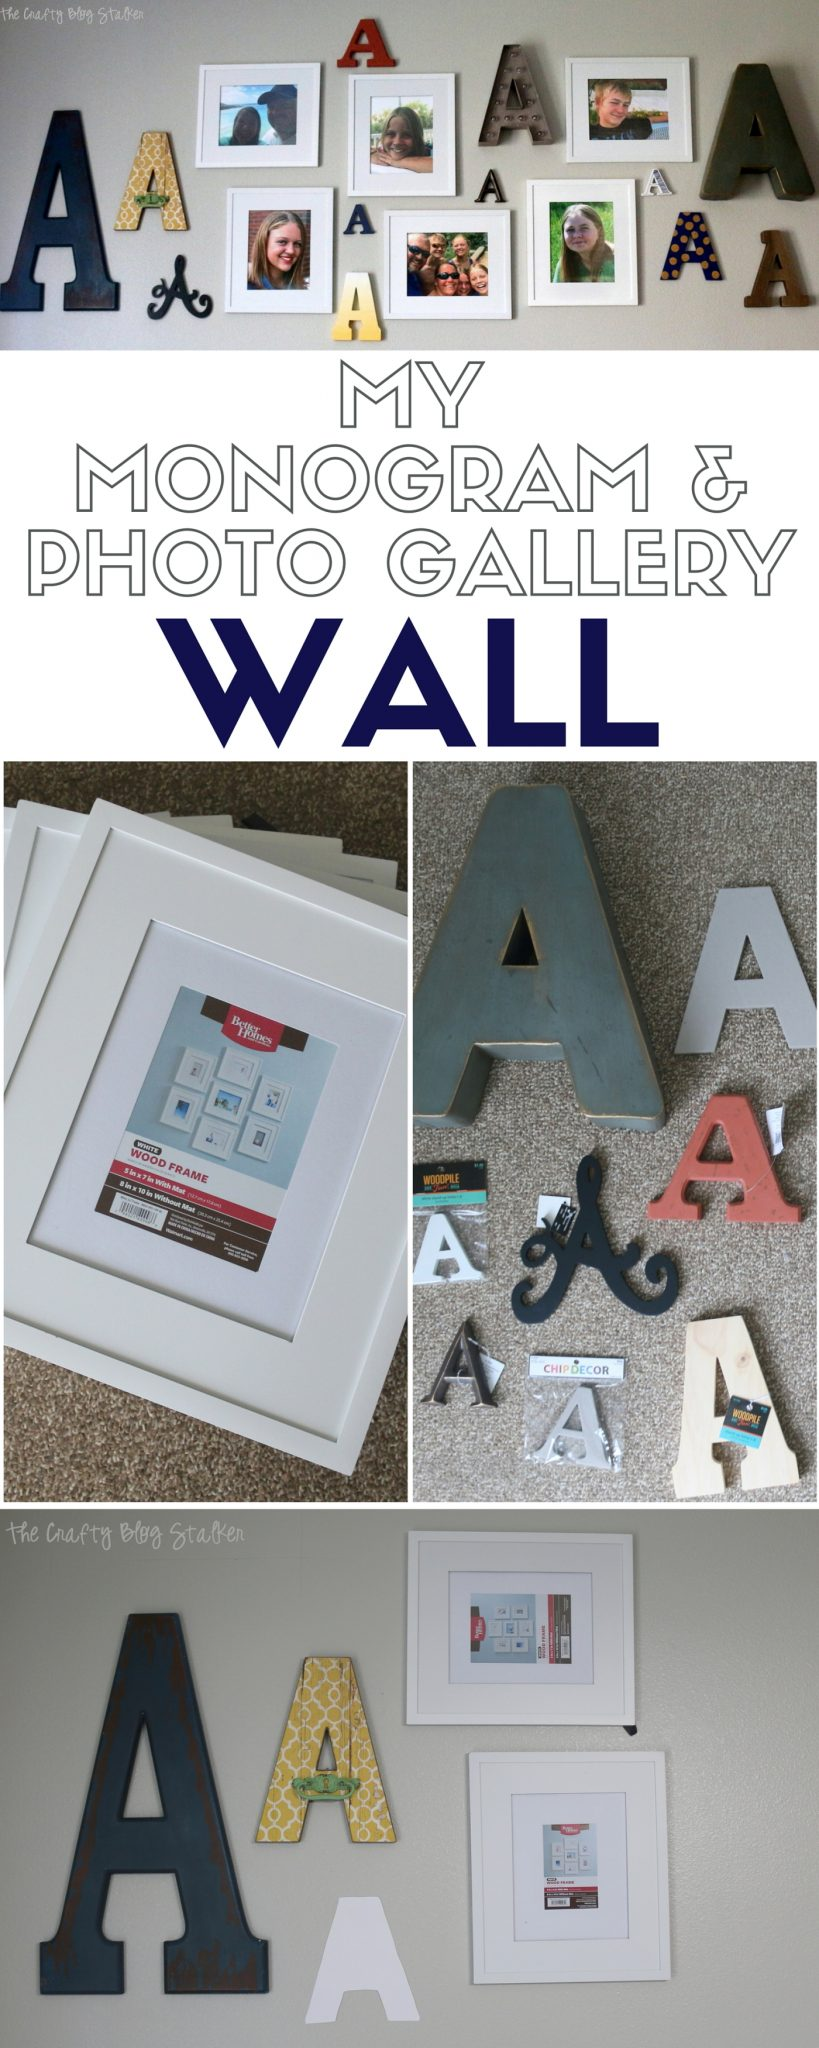 Monogram Photo Gallery Wall | Home Decor | DIY Ideas | Craft Tutorial